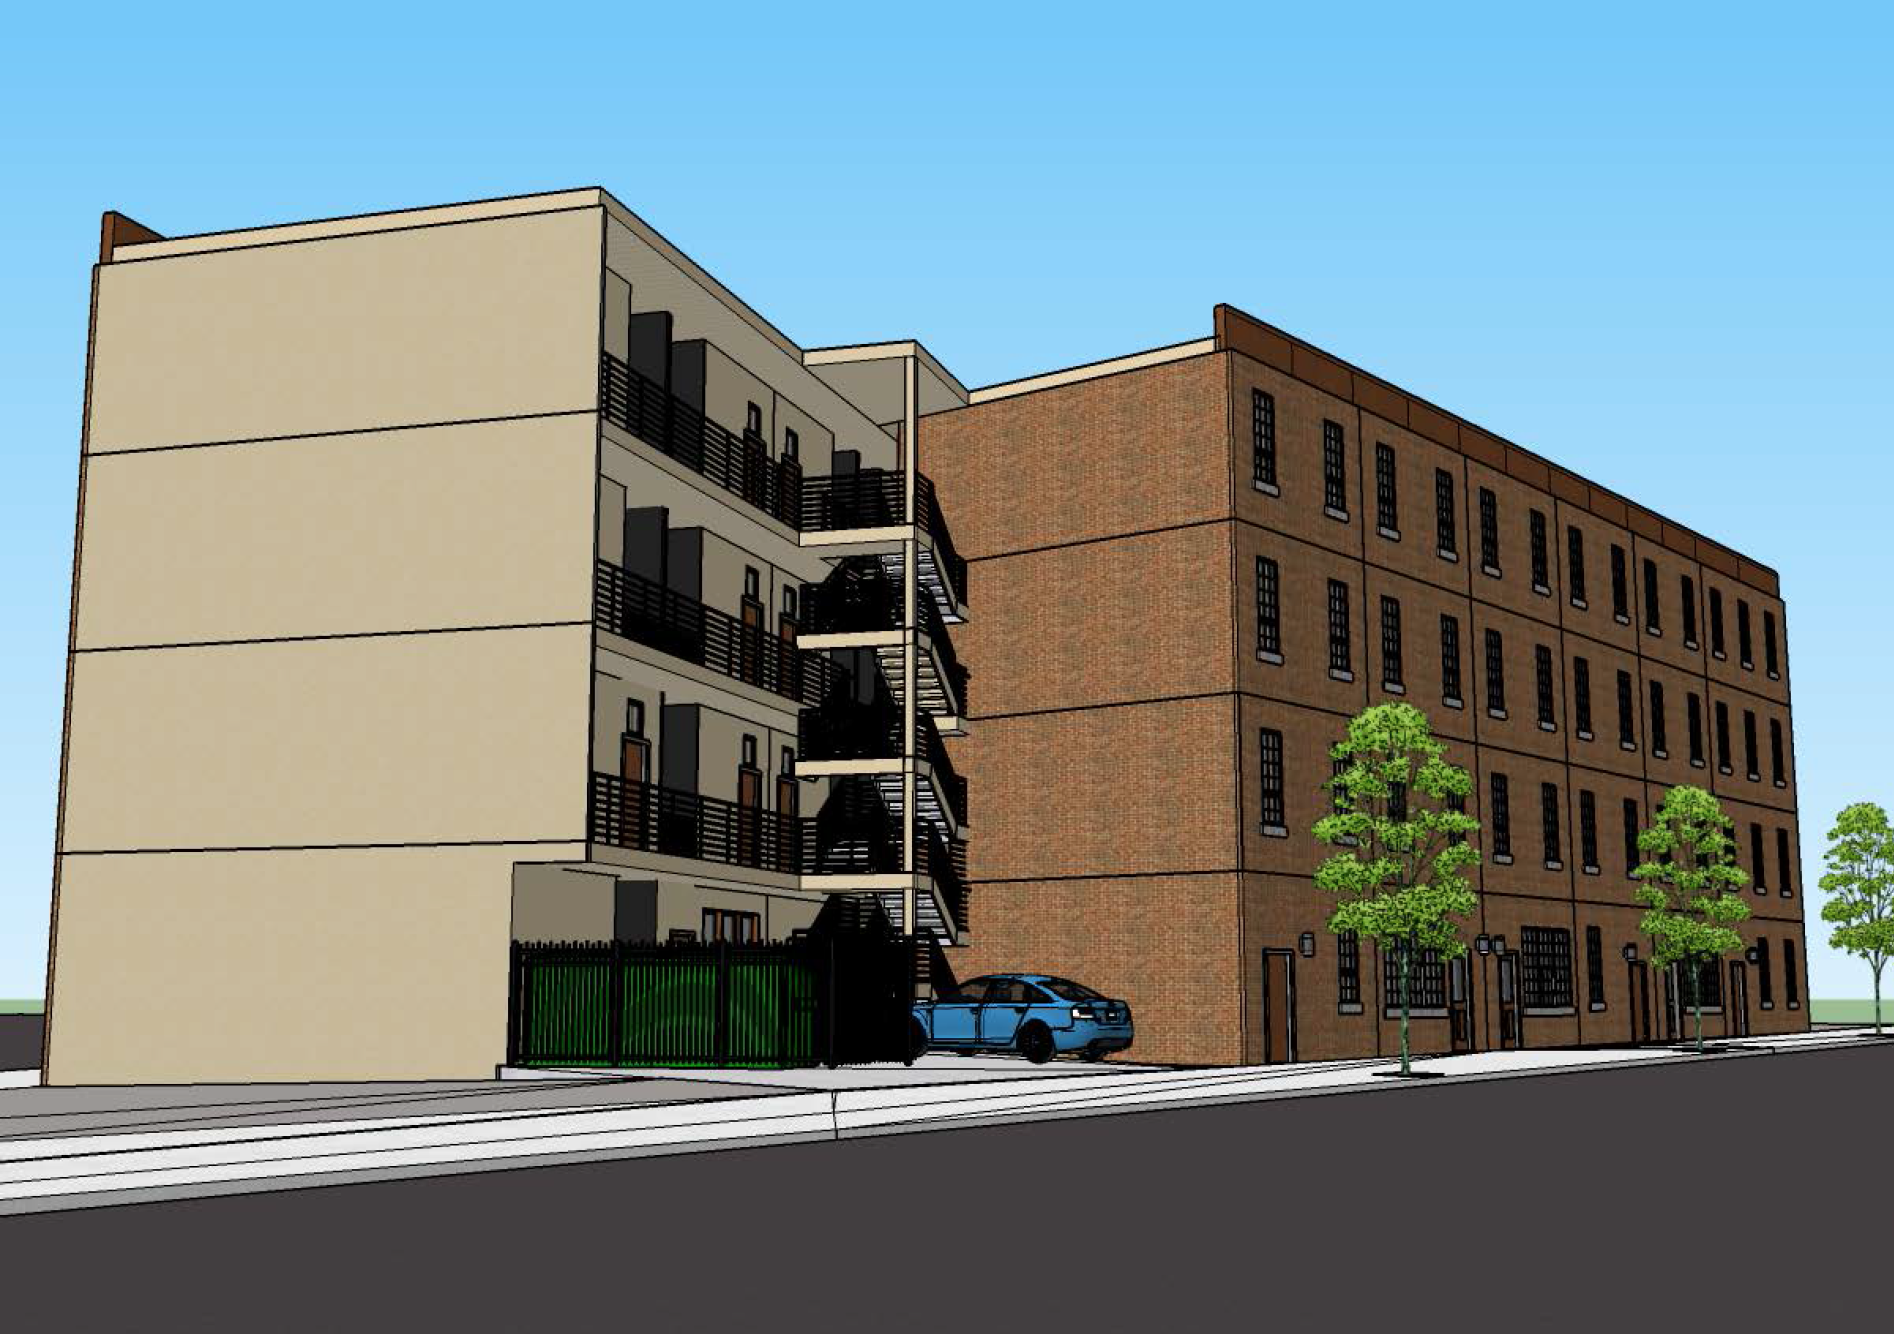 Germantown_Ave_Microapartments.png